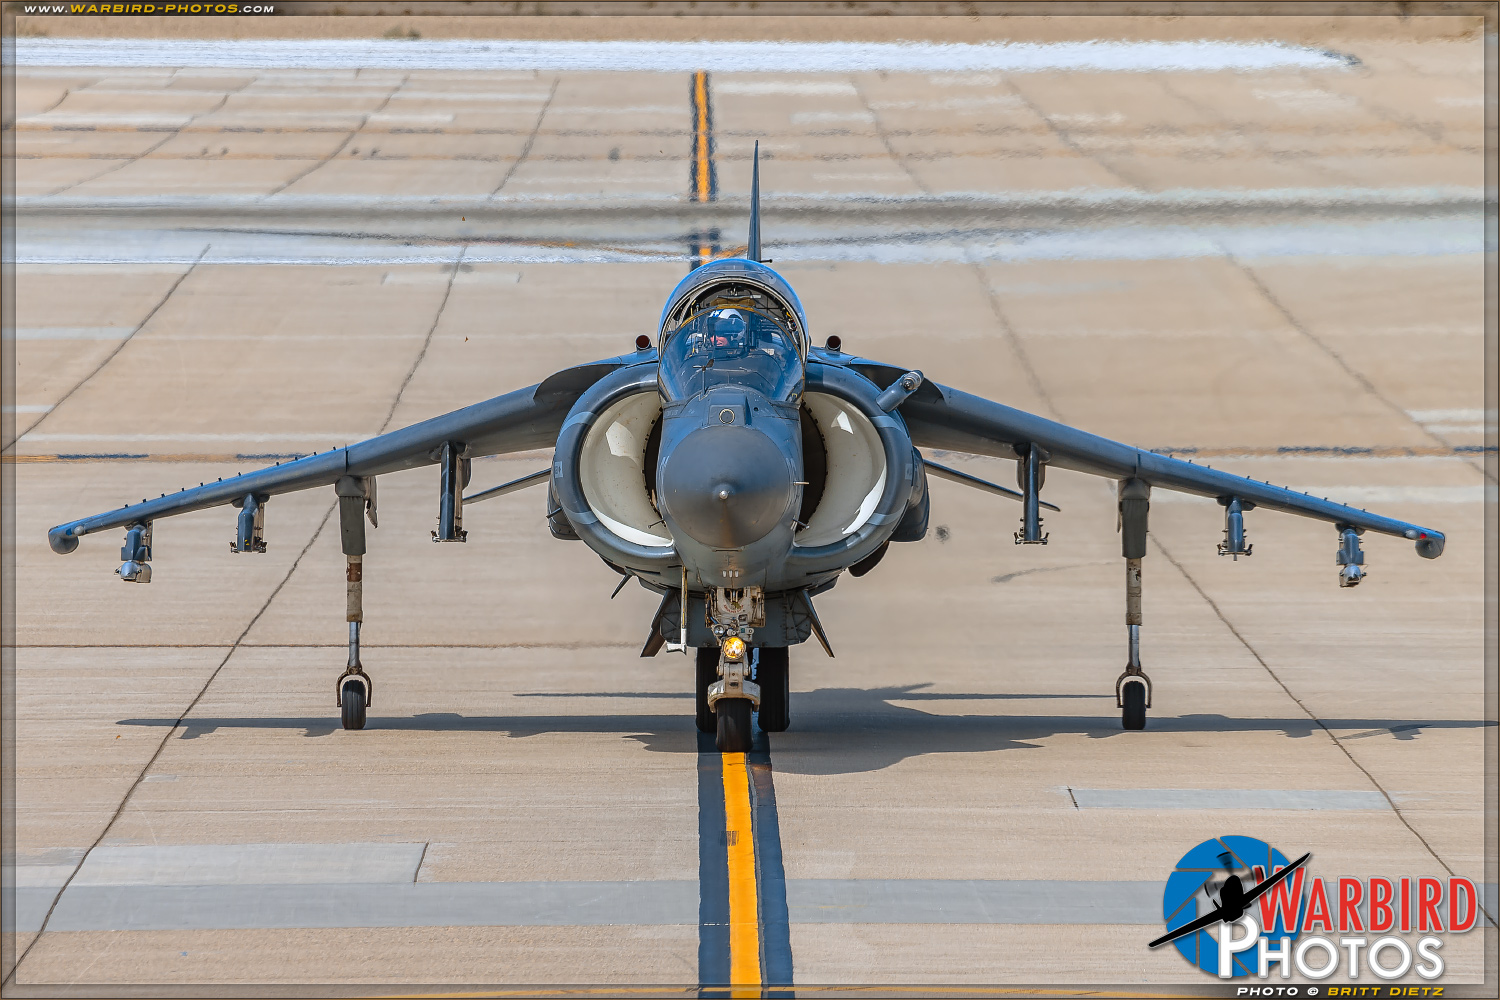 MCAS Yuma Airshow 2019 - March 9, 2019